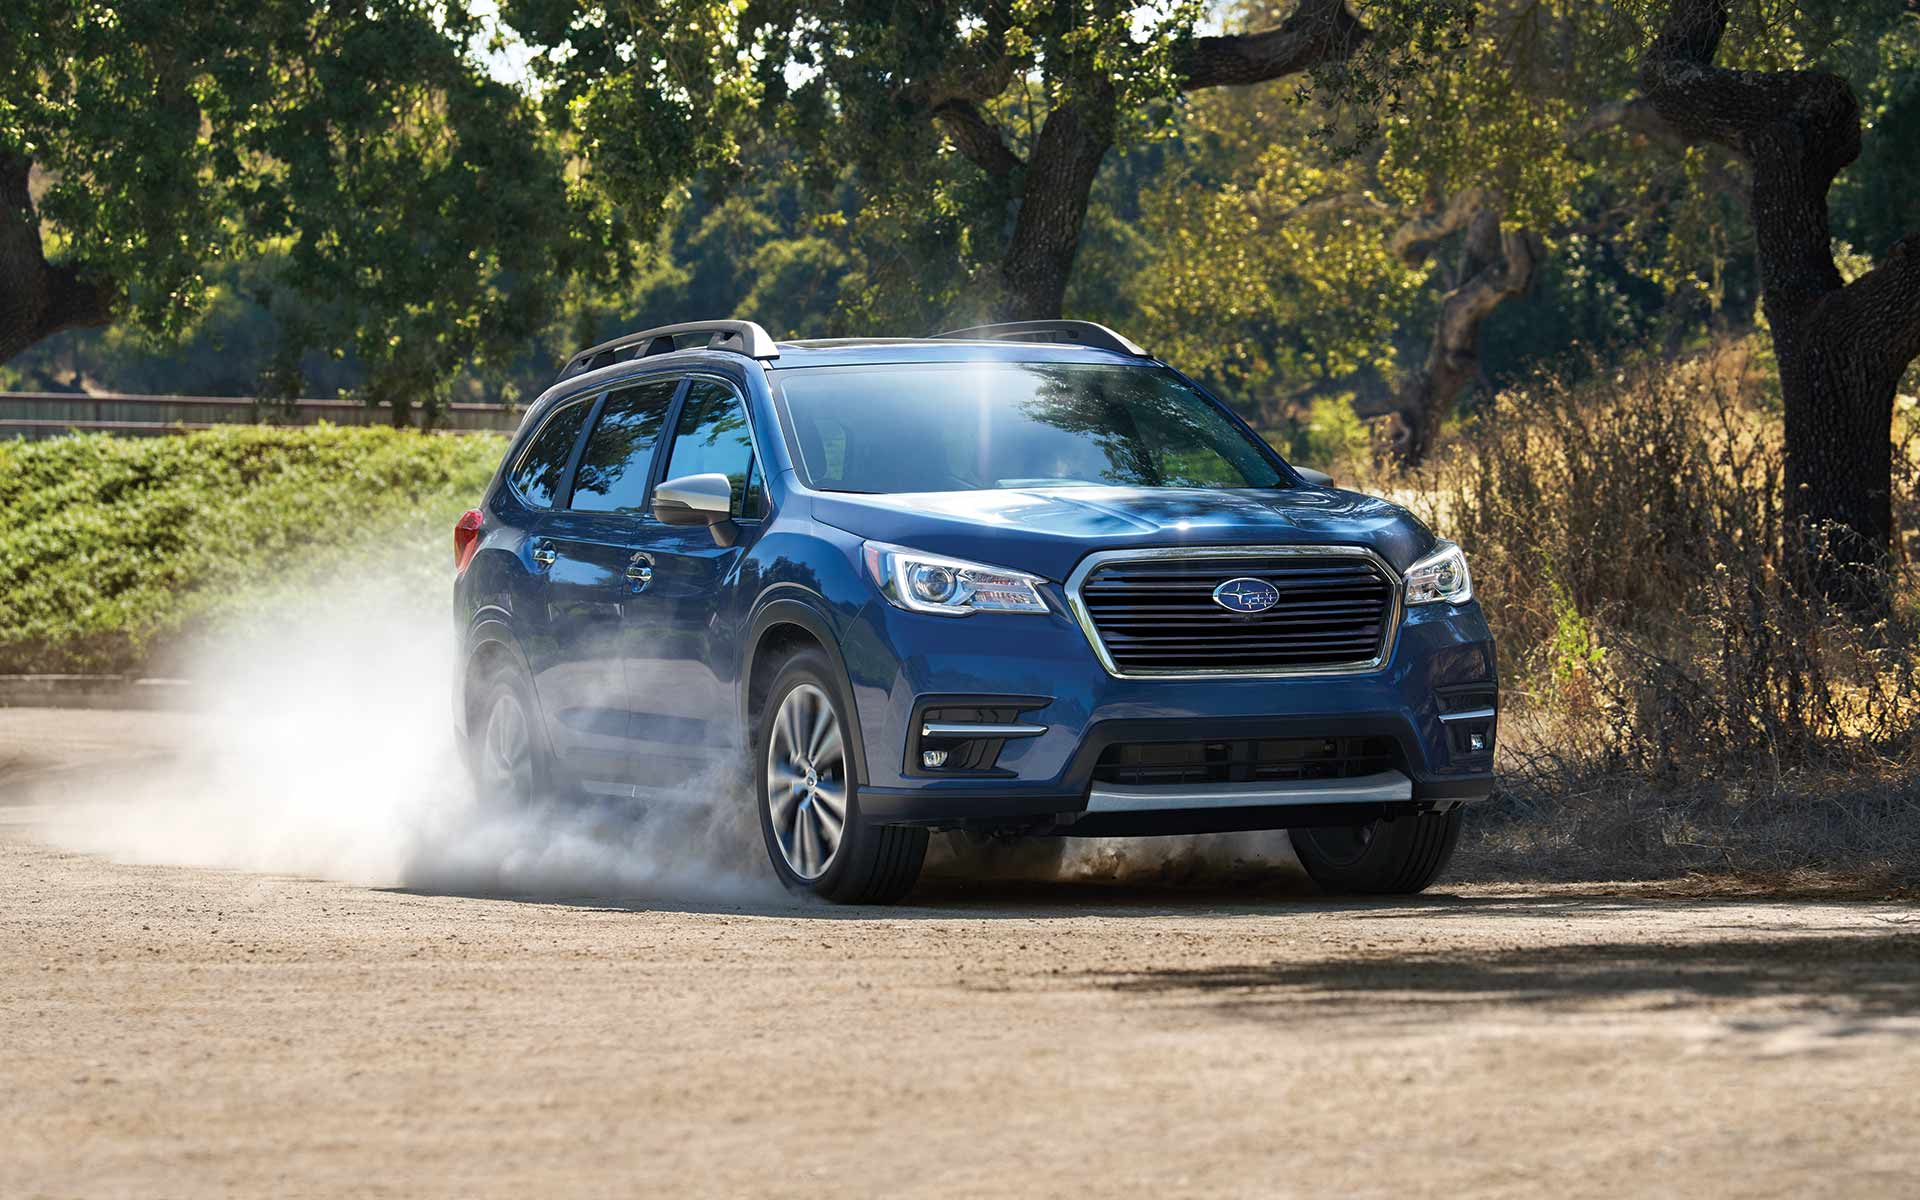 Southfield MI - 2019 Subaru Ascent SUV - OVERVIEW